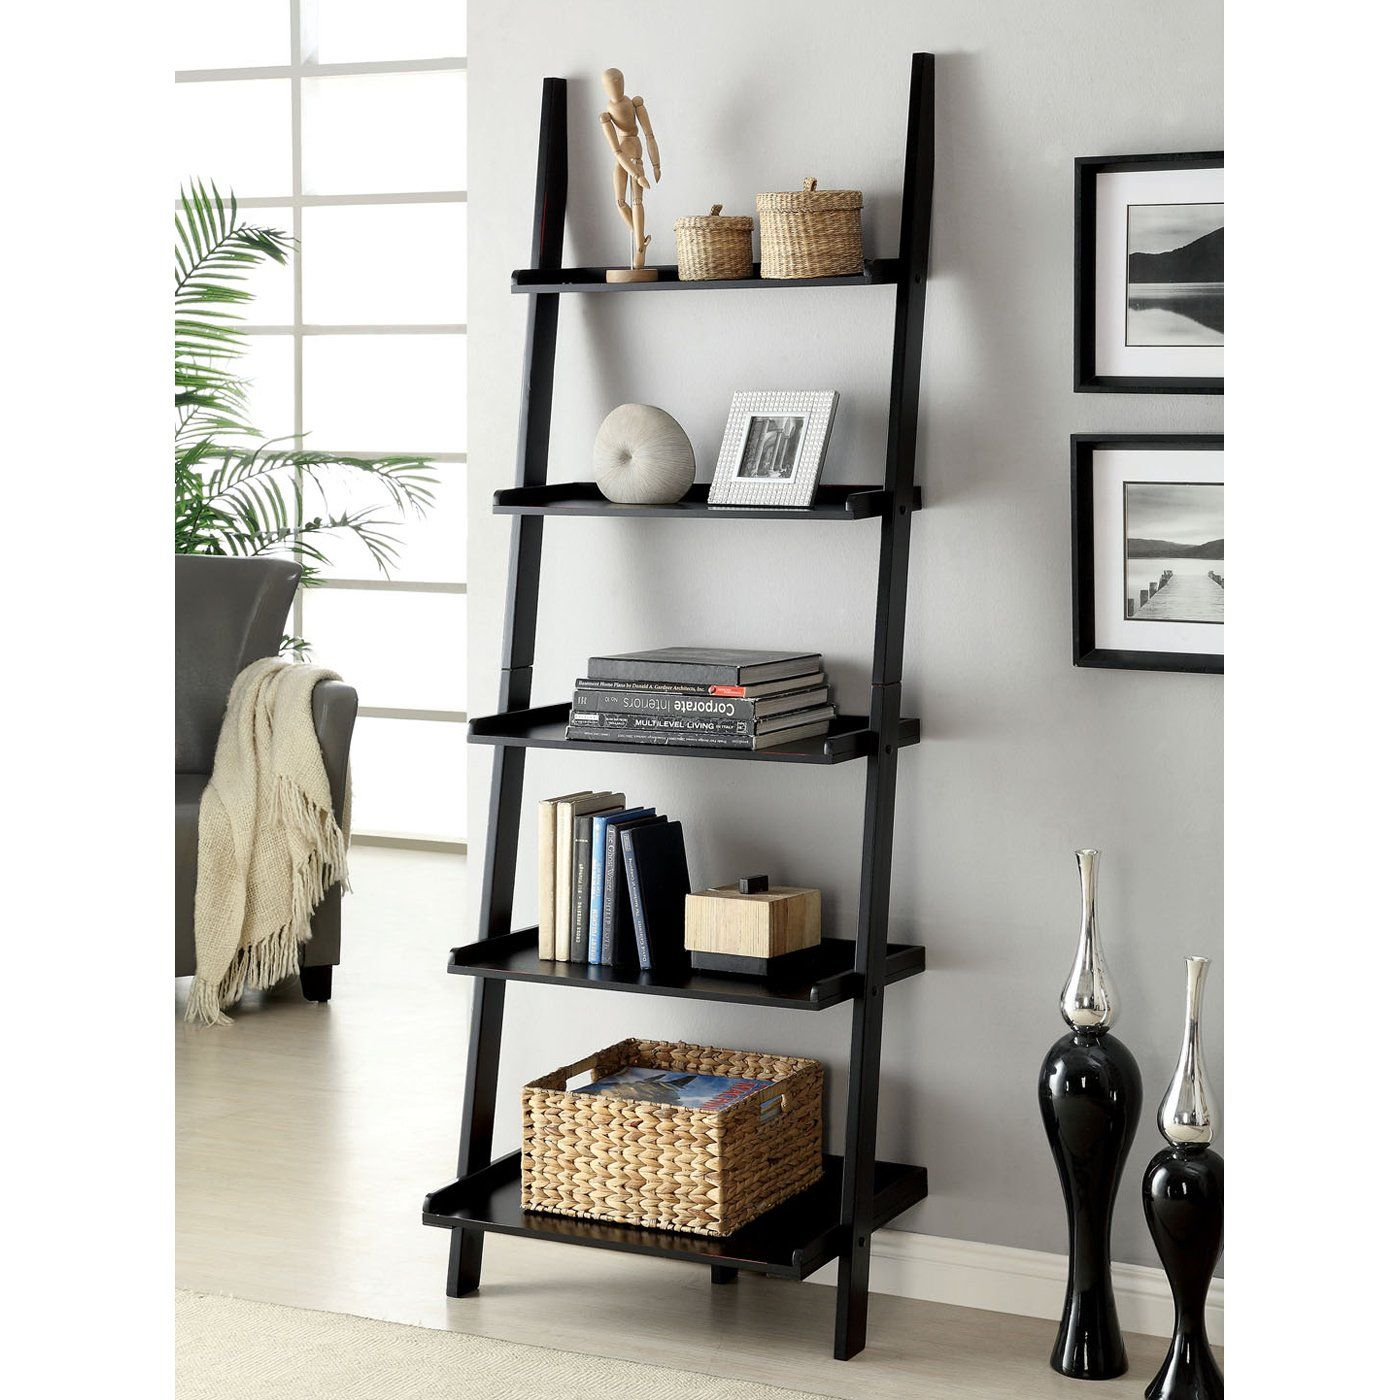 Furniture of america cmacwh sion ladder shelf new living room